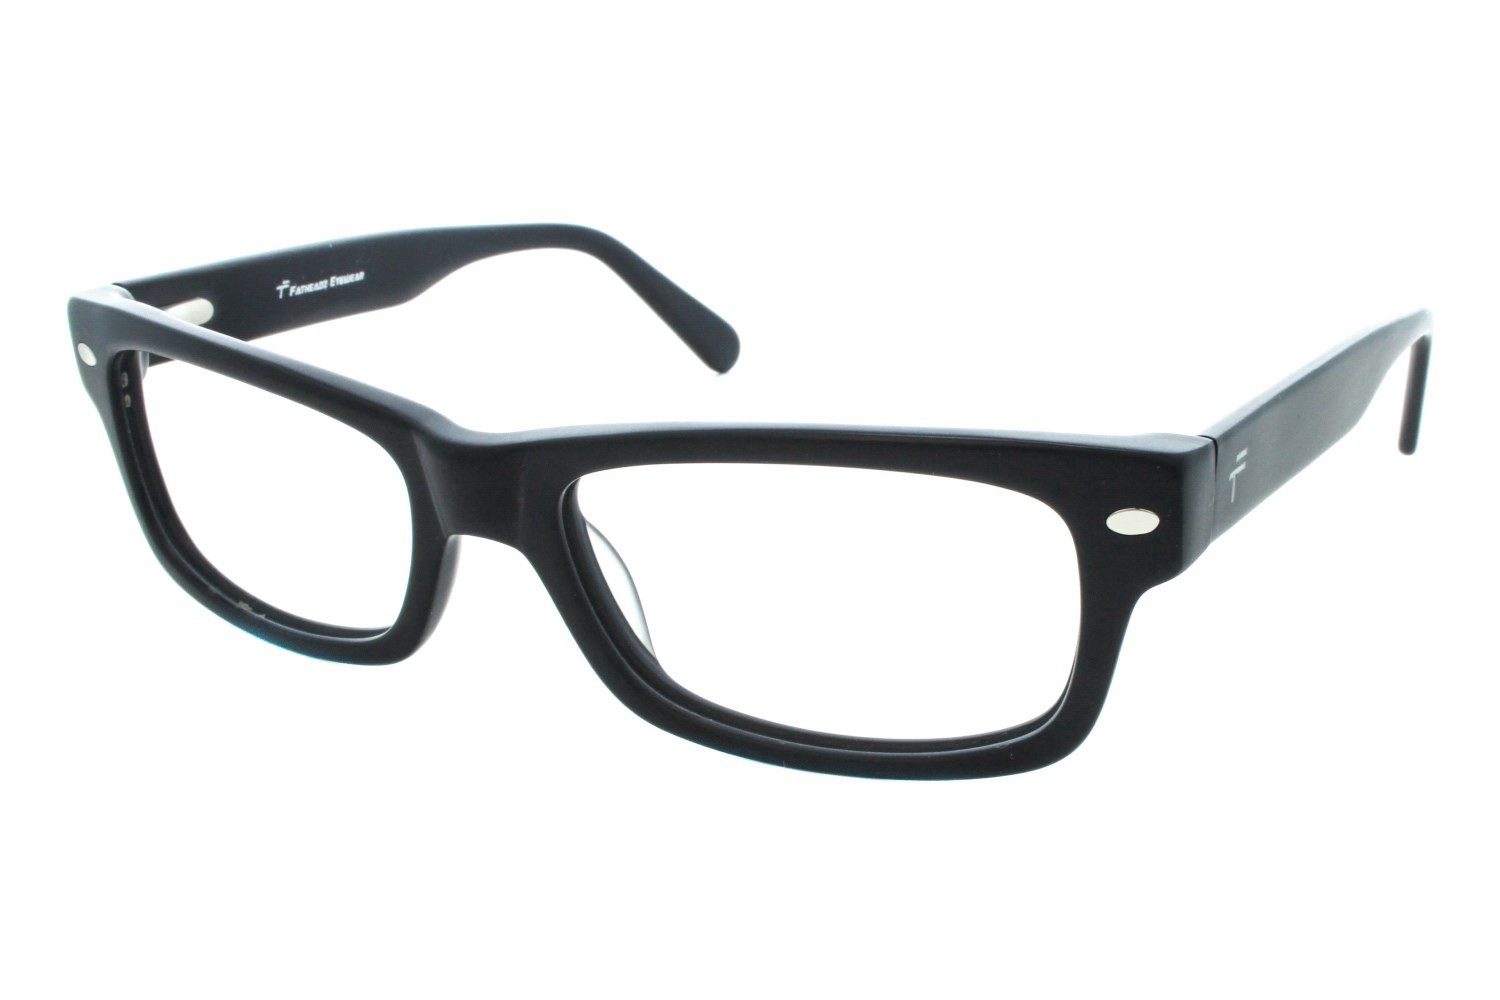 deeec5c4c9 Review Fatheadz Matty XL Prescription Eyeglasses – Review Contact ...